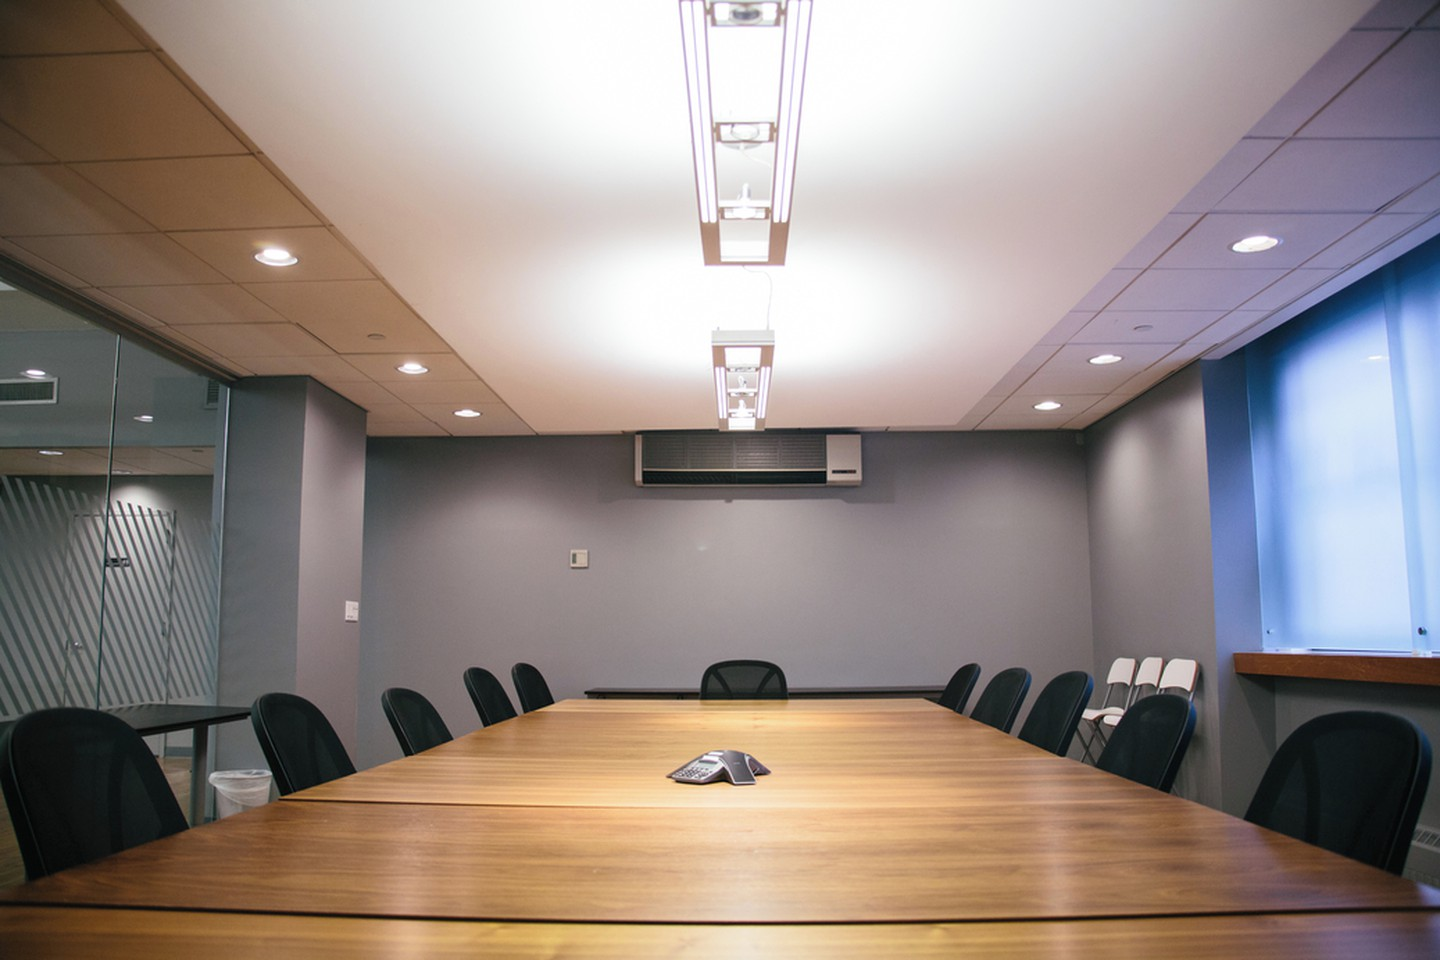 NYC conference rooms Salle de réunion Voyager HQ Board Room image 2